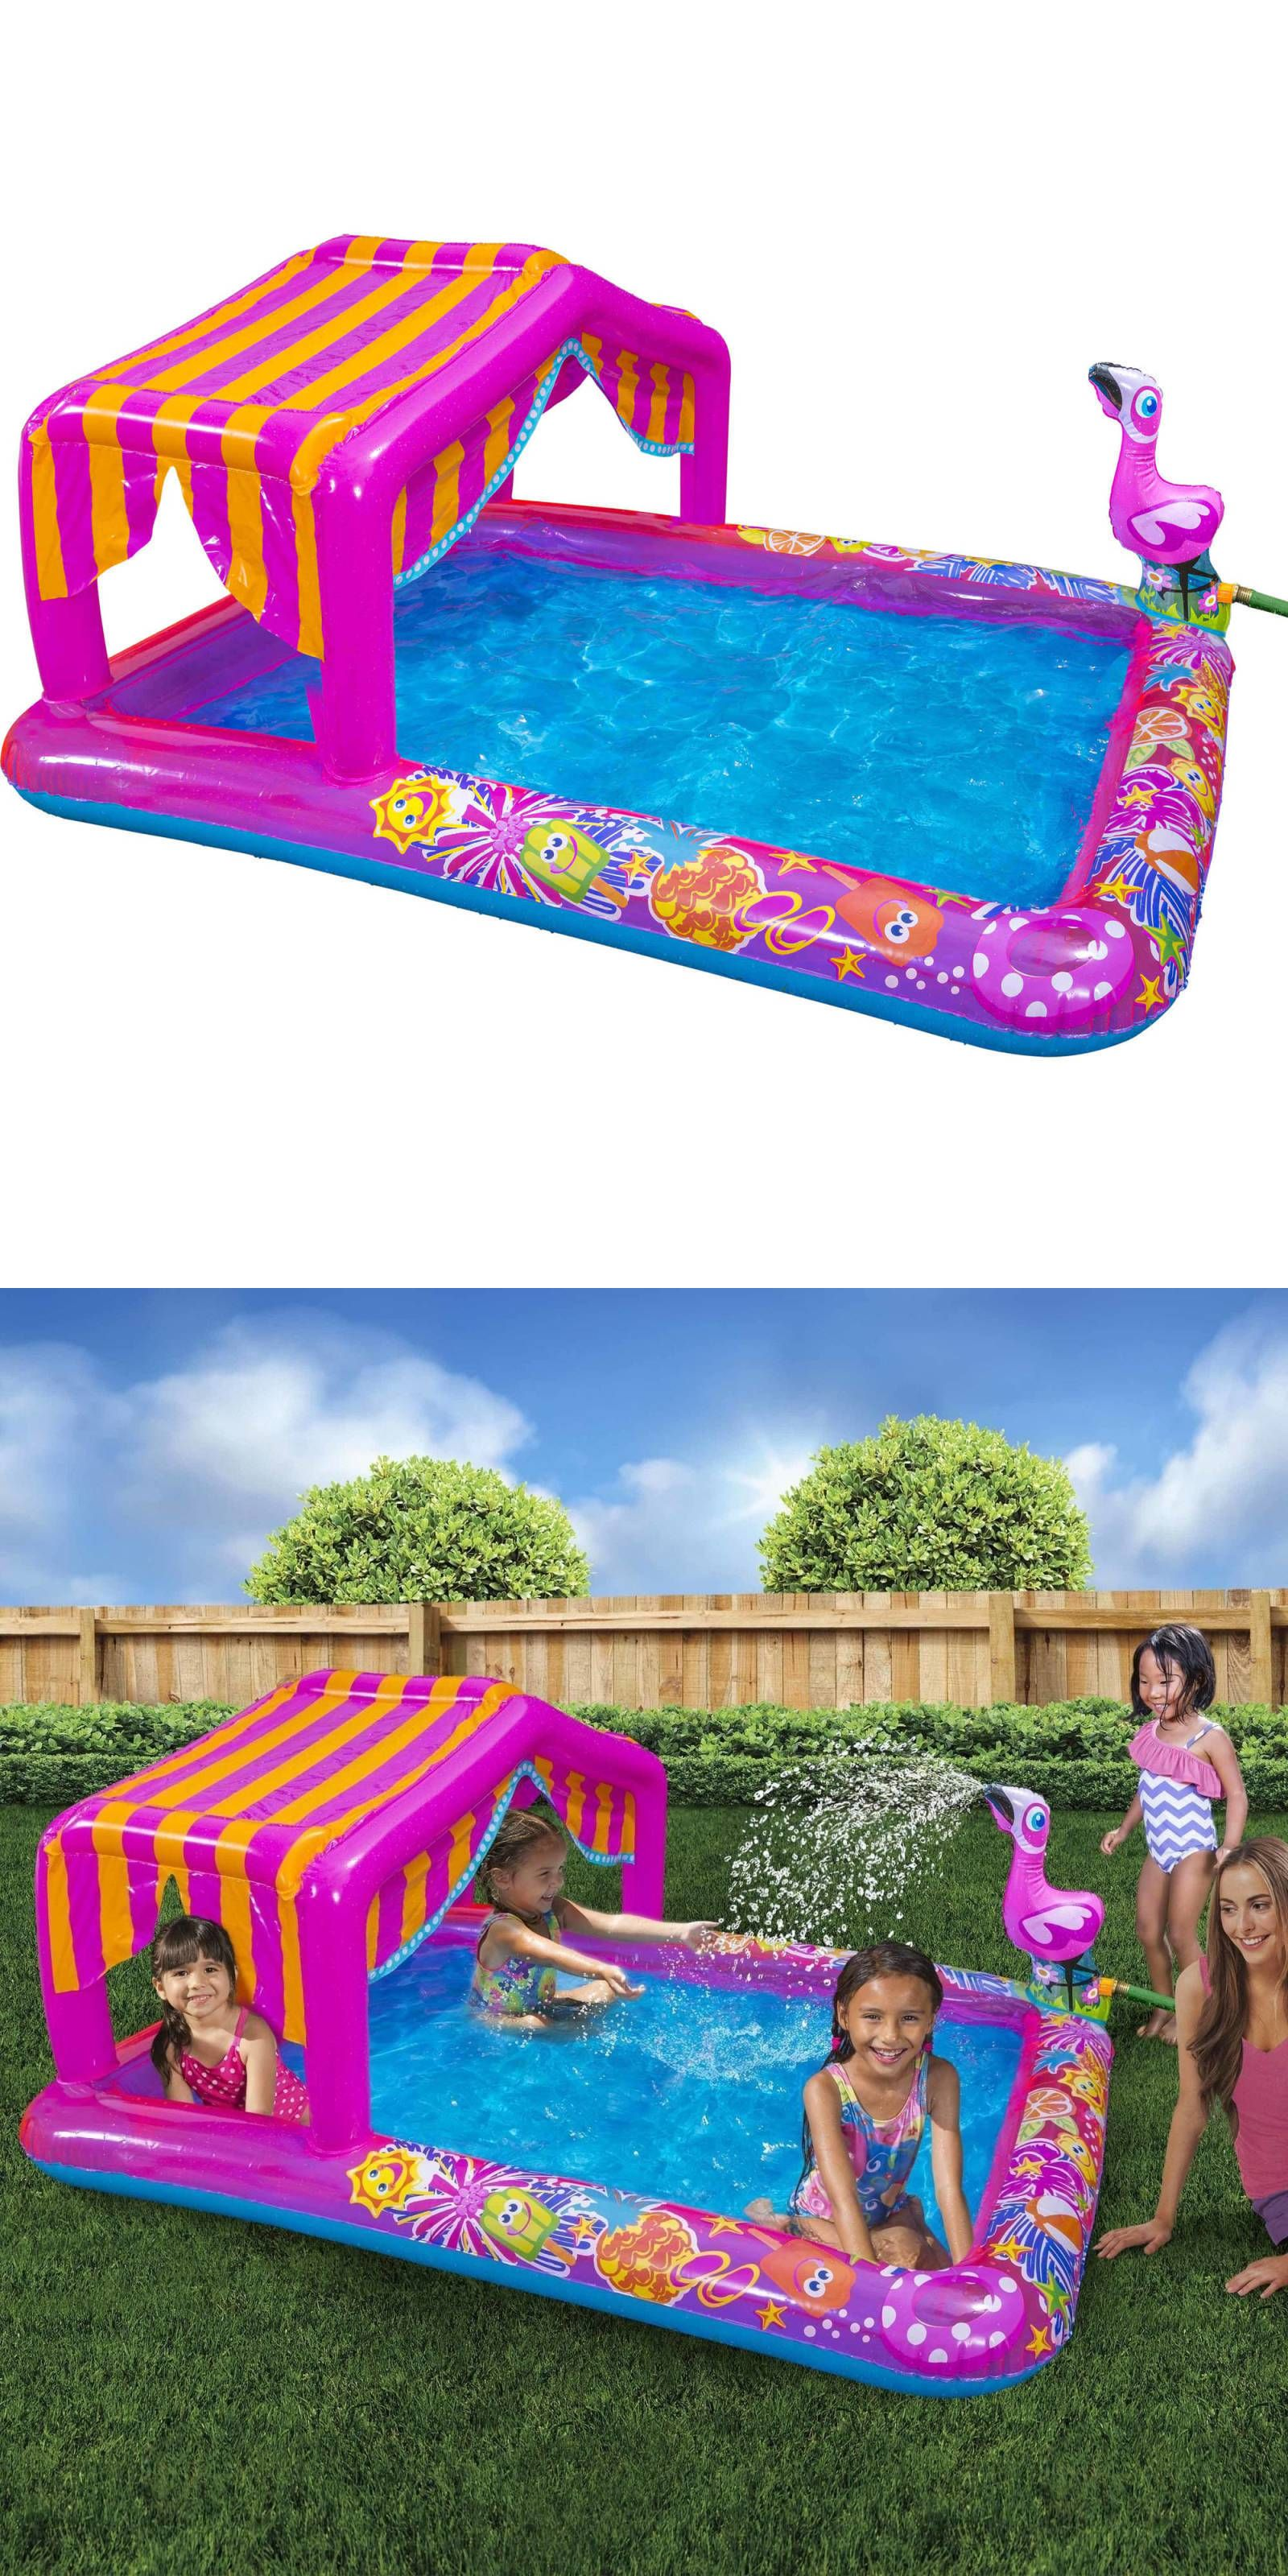 Inflatable and Kid Pools 116407: Inflatable Pool Bounce Backyard 74 L Water Outdoor Swim Family Summer Baby Play -> BUY IT NOW ONLY: $84.7 on eBay!